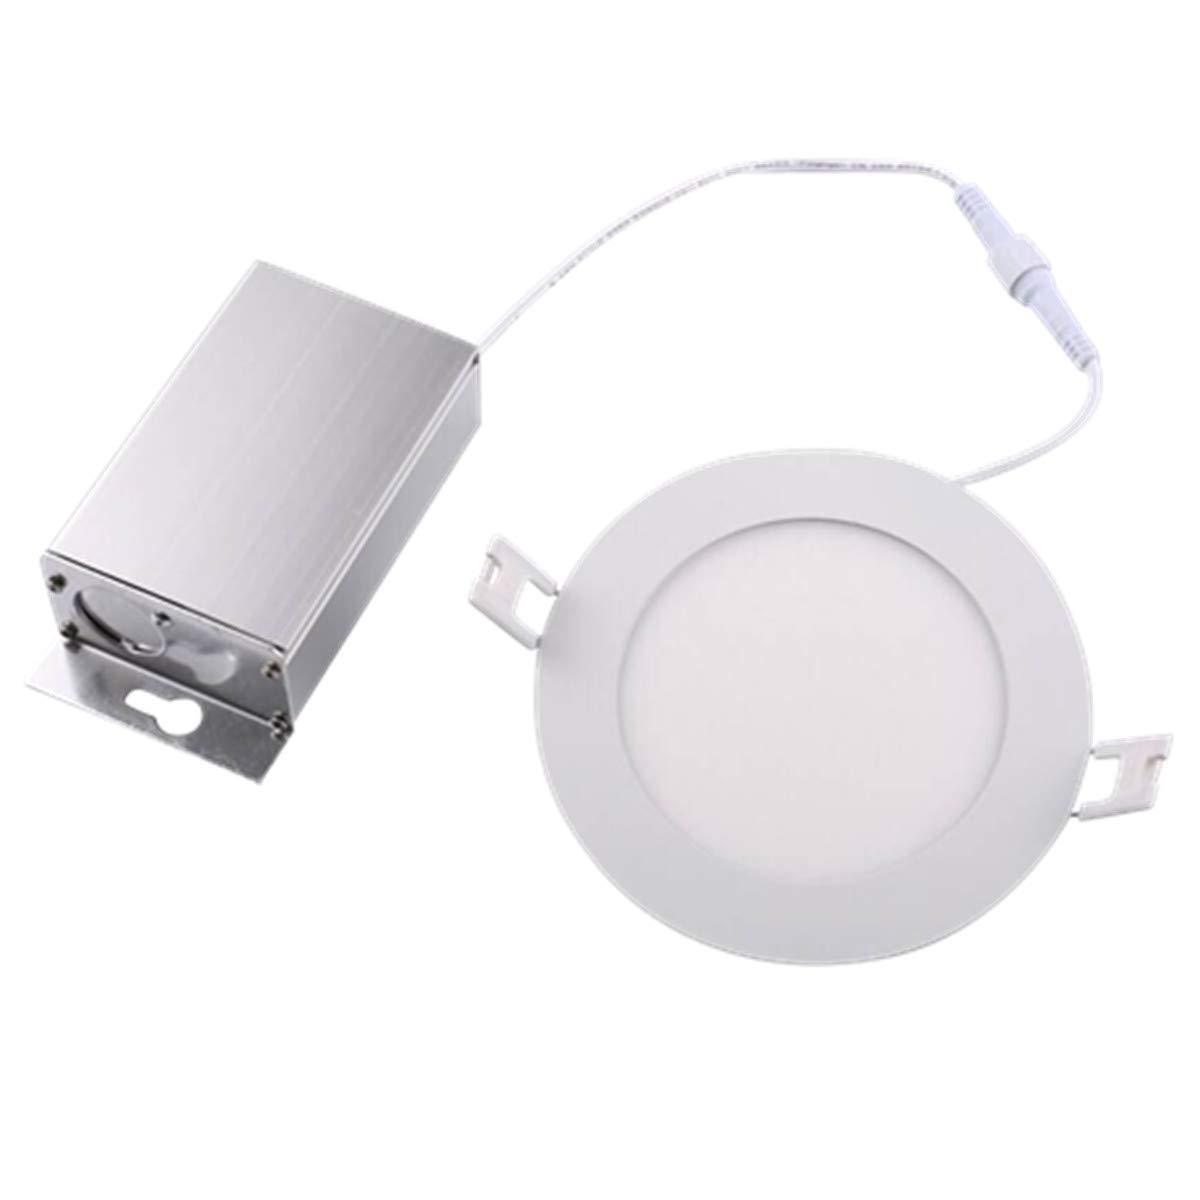 NickLED 4inch 8W Round LED Recessed Panel Ceiling Light IC Rated With Junction Box, Dimmable 5000K-Natural White, 750lumens, Thickness(10mm) Die-casting Aluminum with good heat dissipation